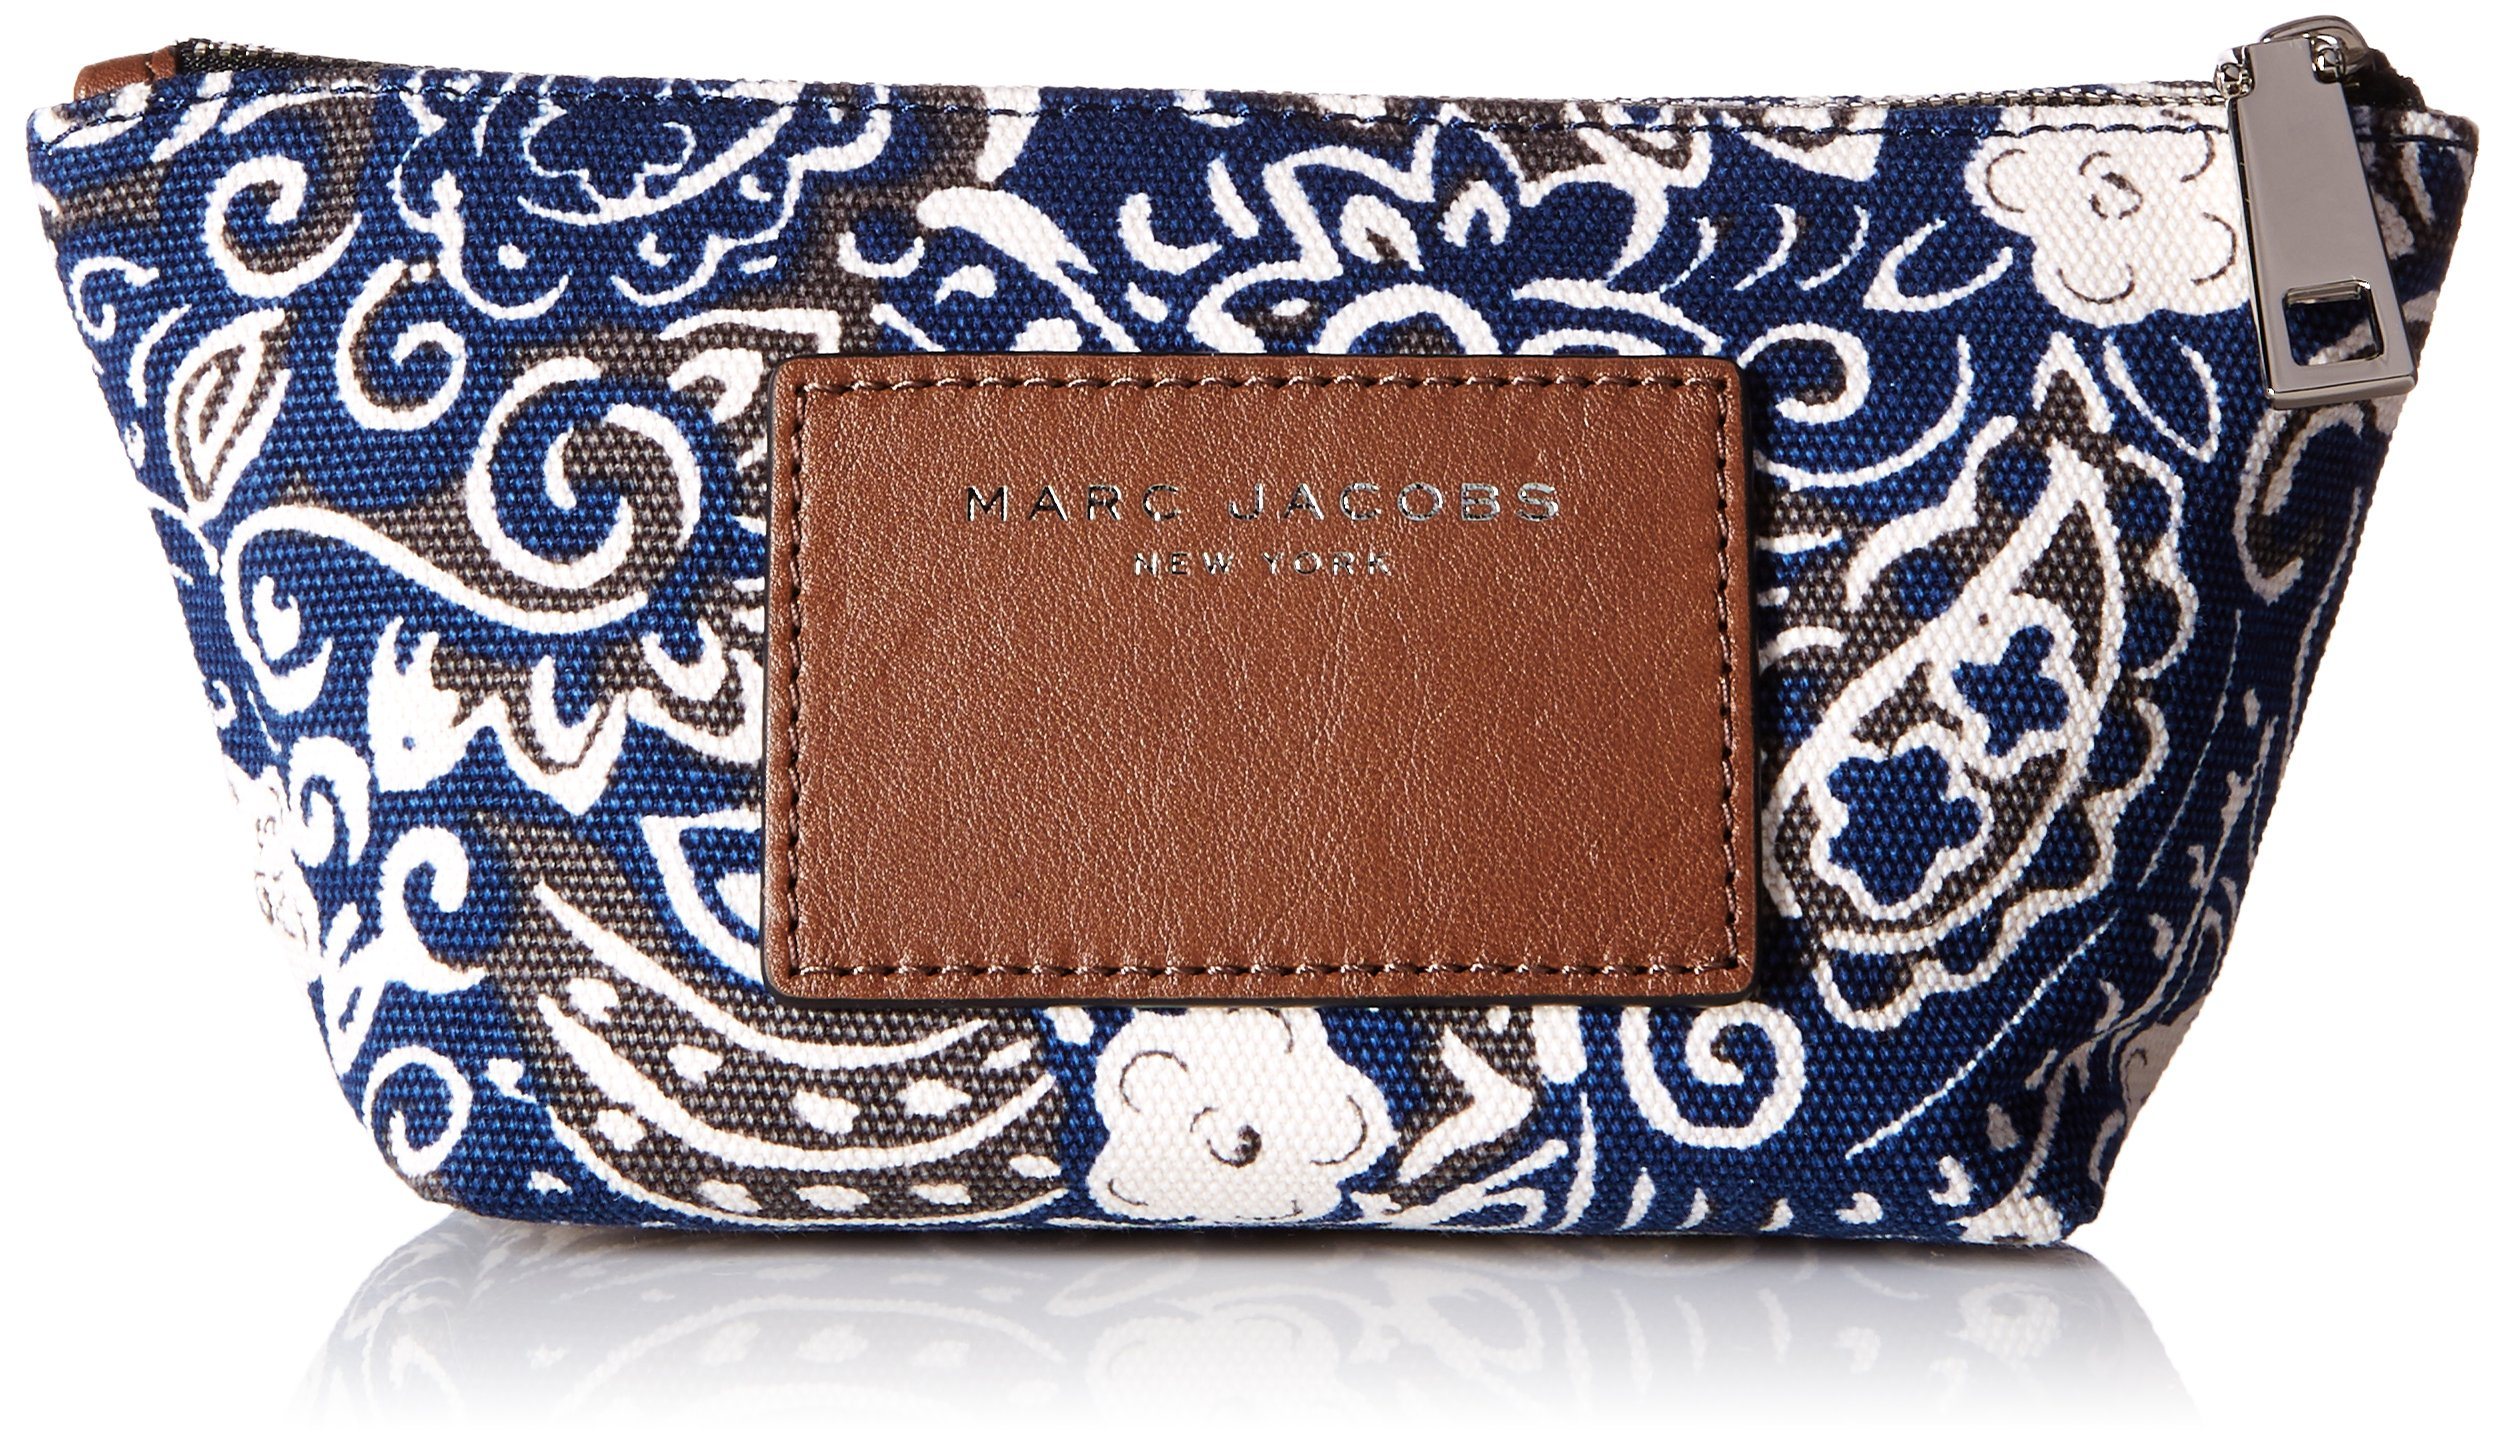 Marc Jacobs Paisley Cosmetics Small Trapezoid Accessory, Black/Multi, One Size